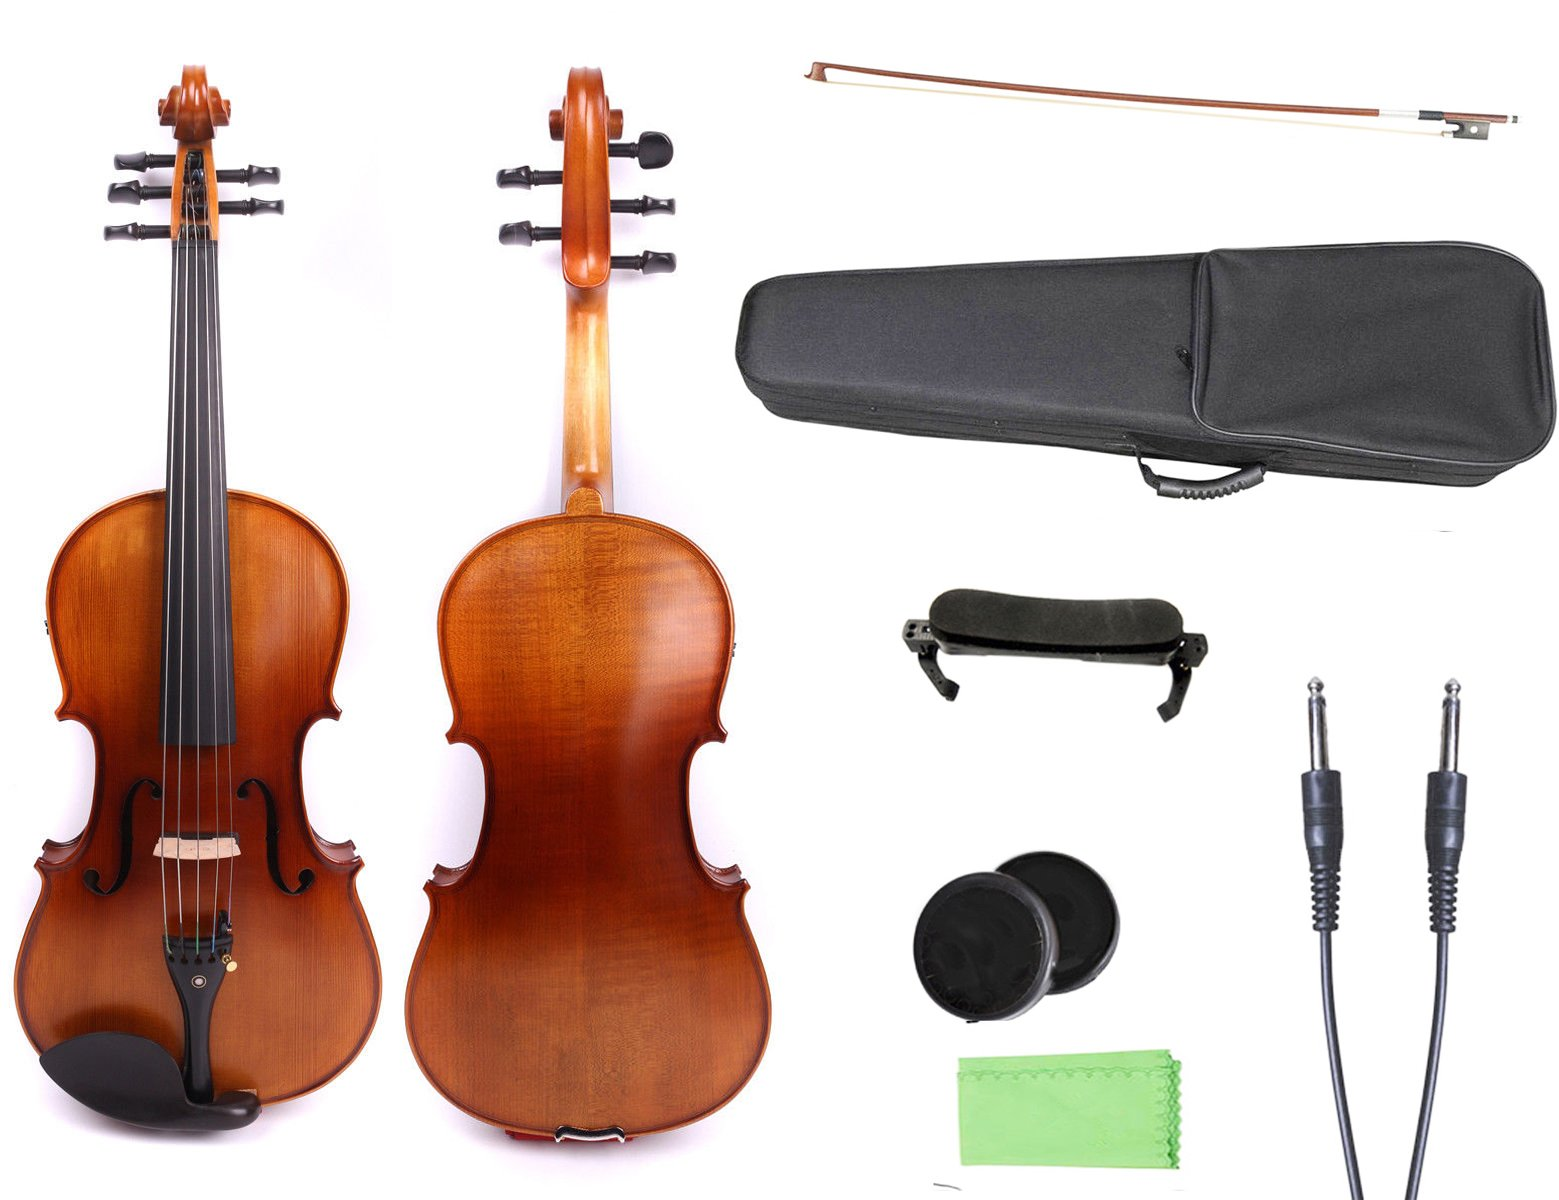 Yinfente 4/4 violin 5 string Electric violin Full size Maple Spruce wood Big jack Ebony wood Violin parts Sweet Sound by yinfente (Image #1)